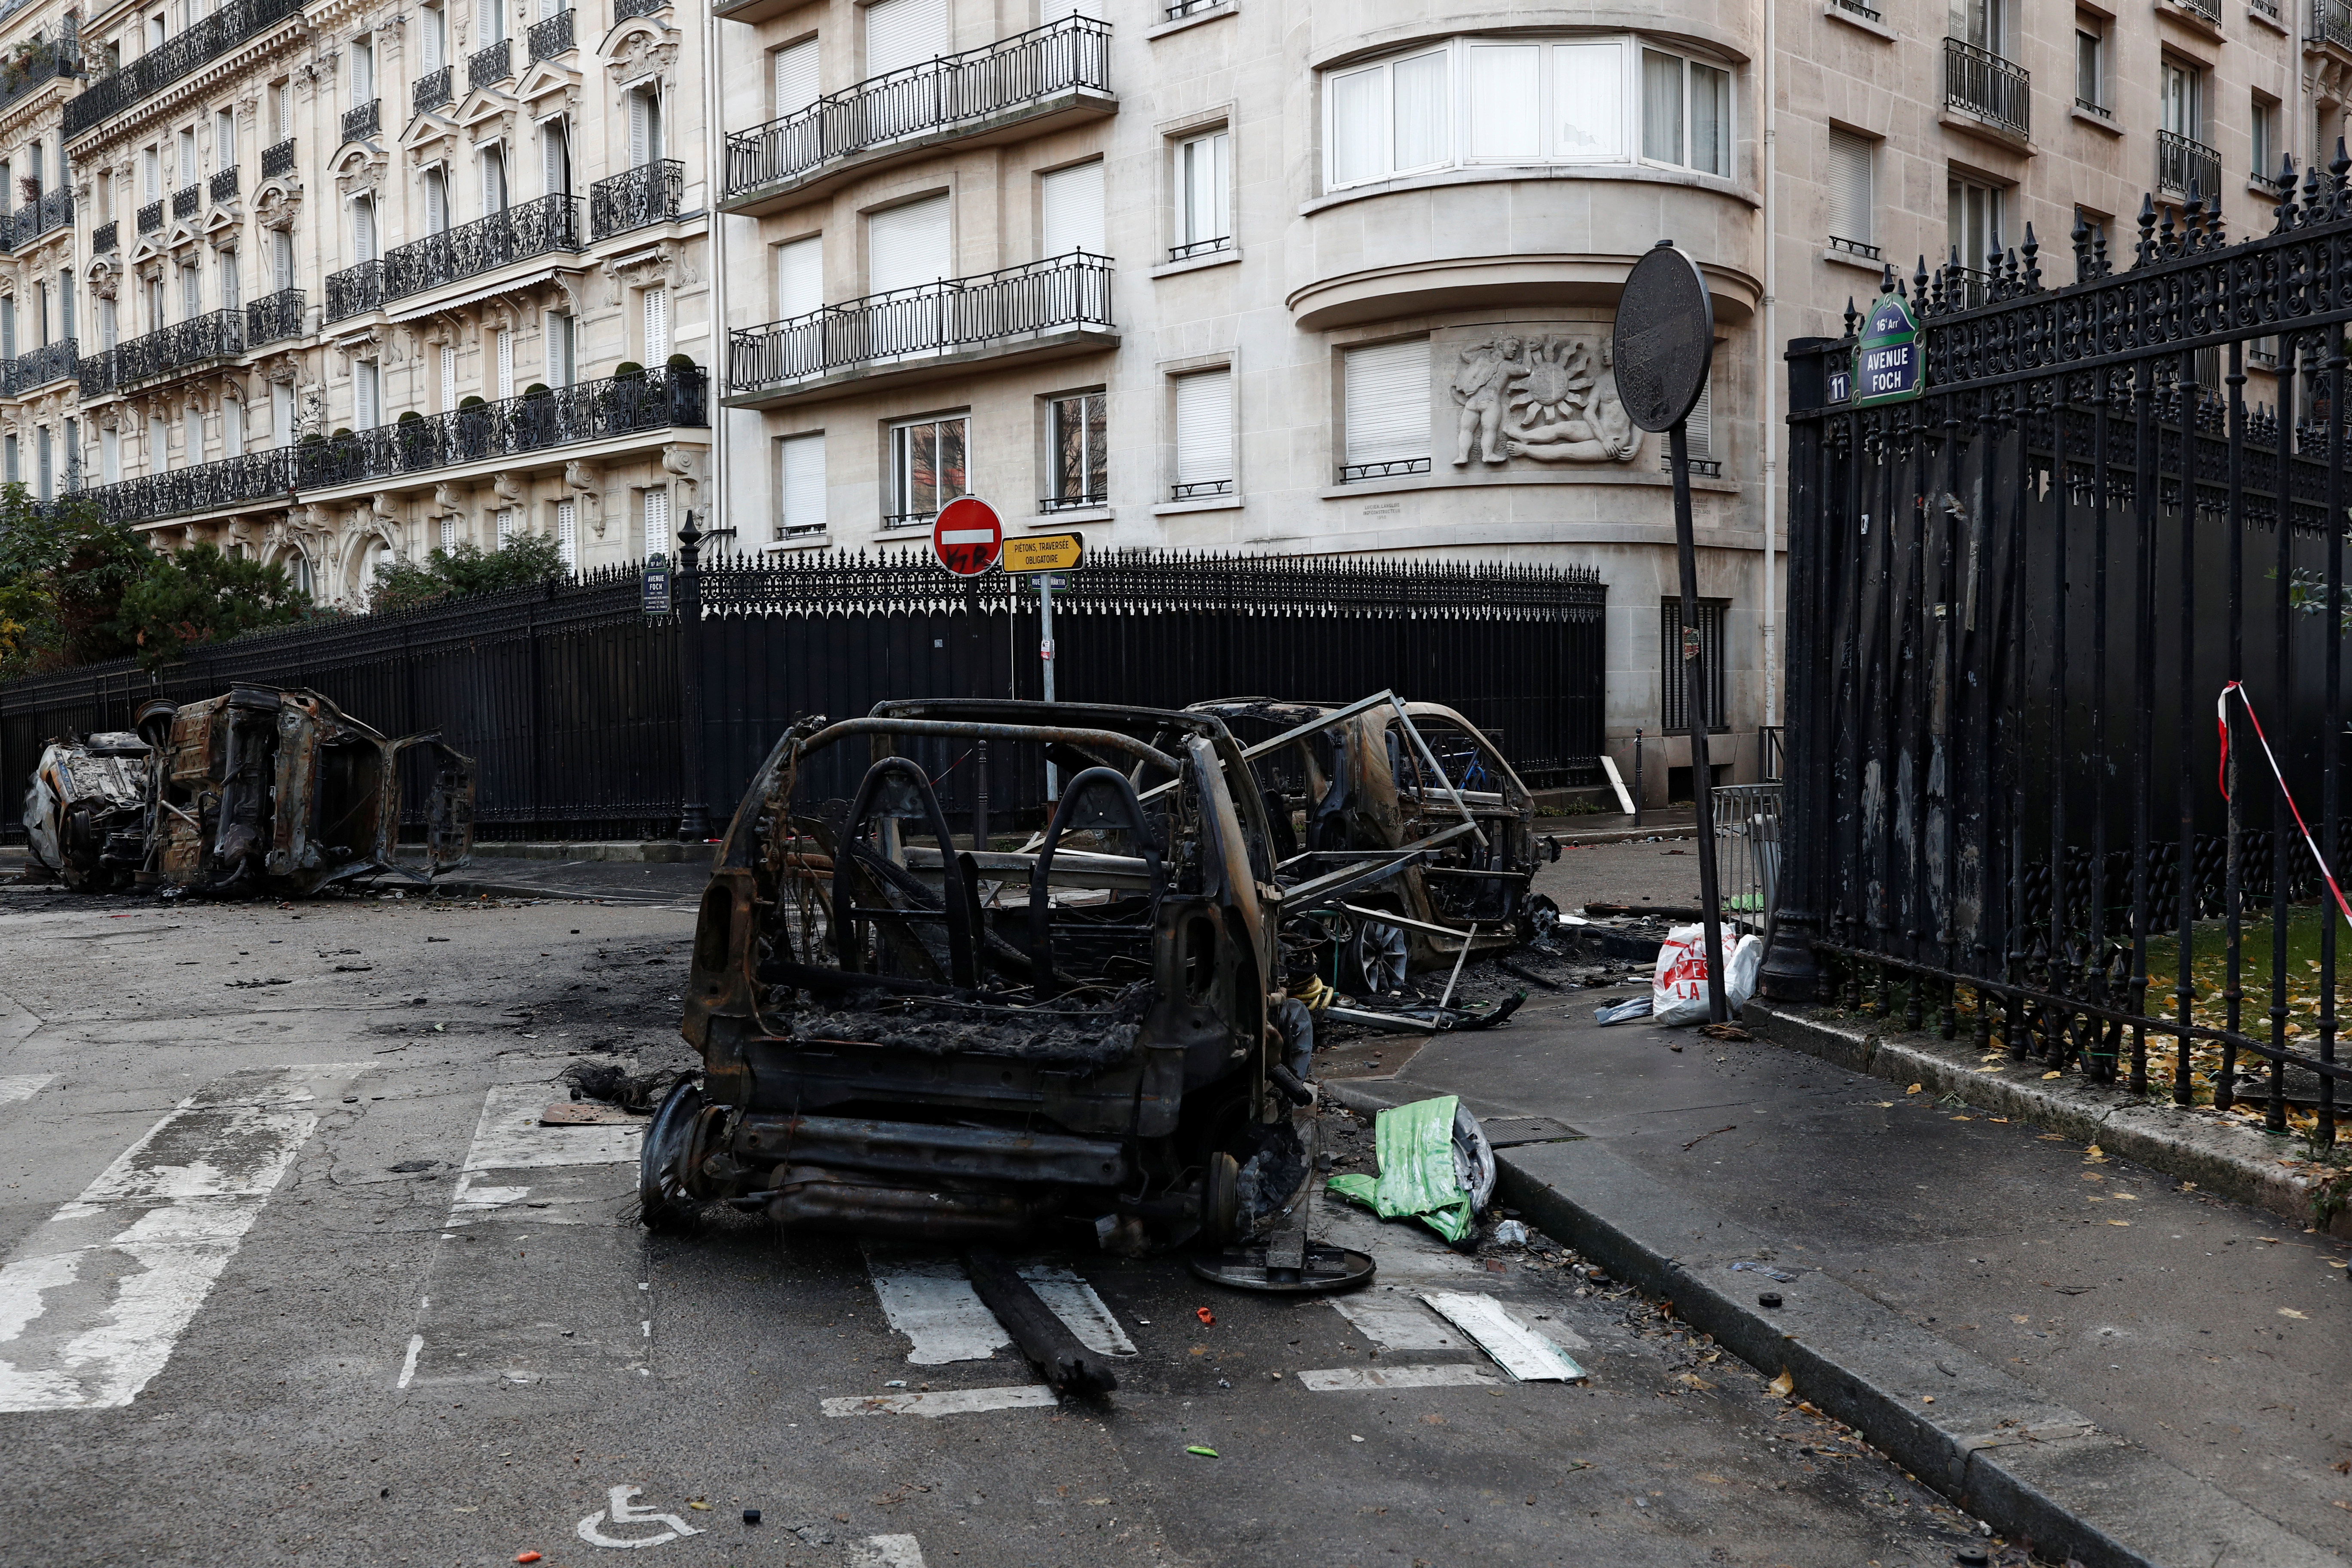 Vandalized cars are seen on a street the morning after clashes with protesters wearing yellow vests, a symbol of a French drivers' protest against higher diesel taxes, in Paris, France, December 2, 2018. REUTERS/Benoit Tessier